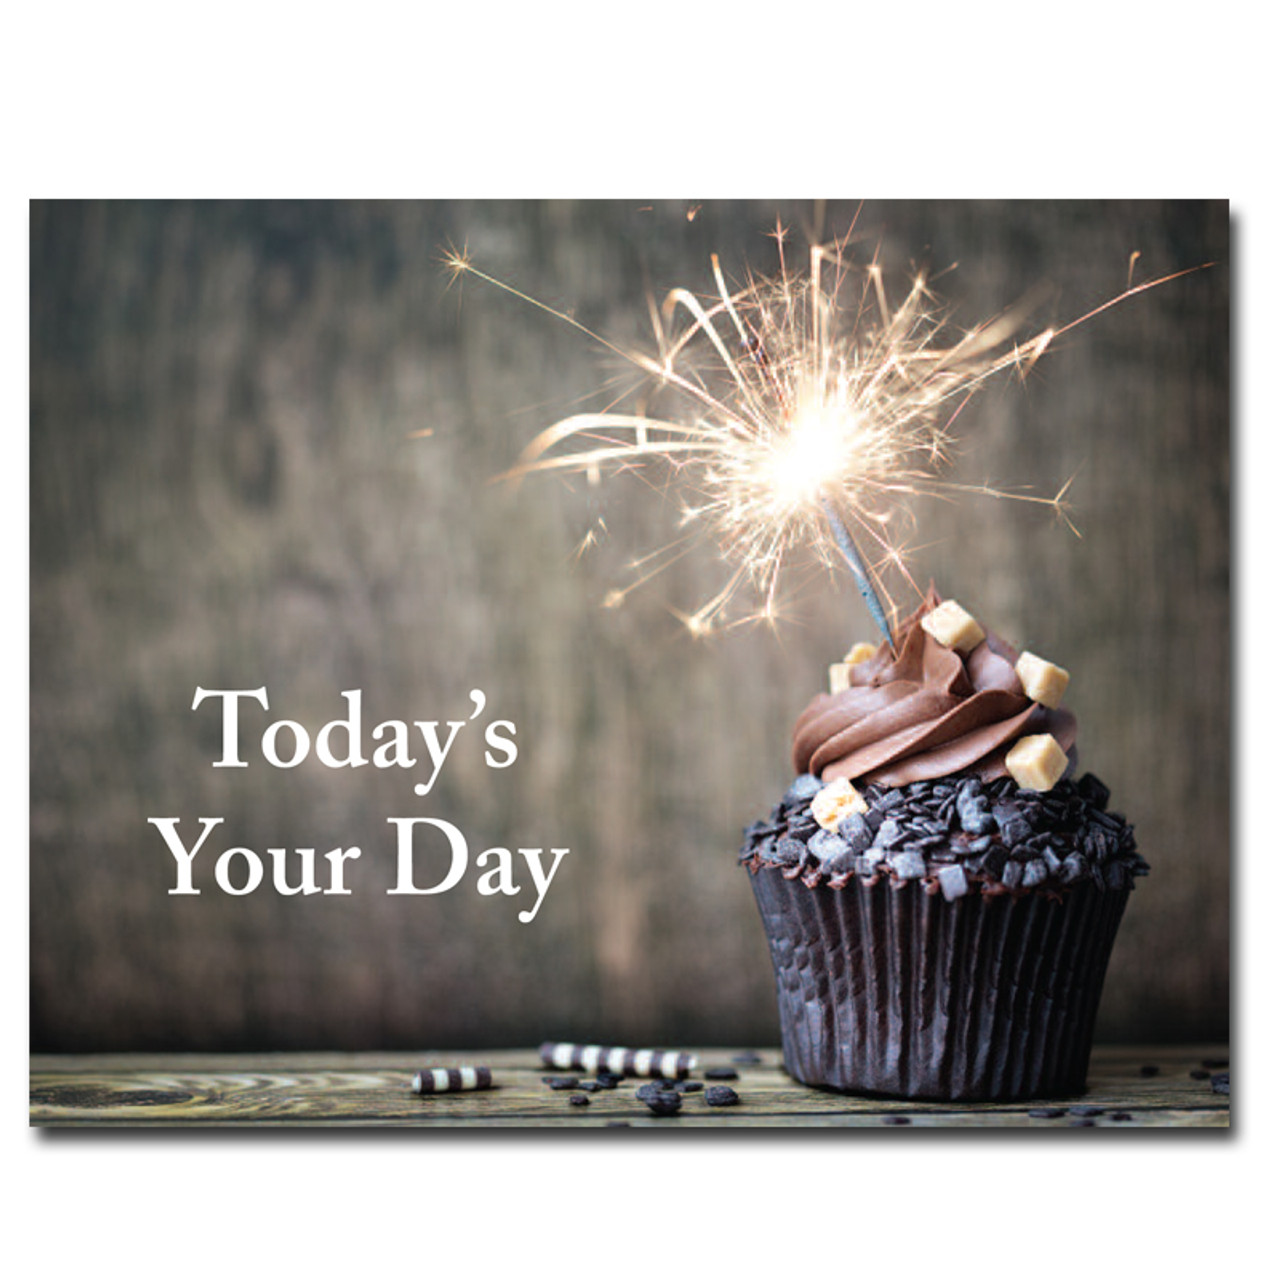 Chocolate Cupcake Birthday Postcard pictures a dark chocolate cupcake topped with a sparkler. Greeting reads, Today's Your Day